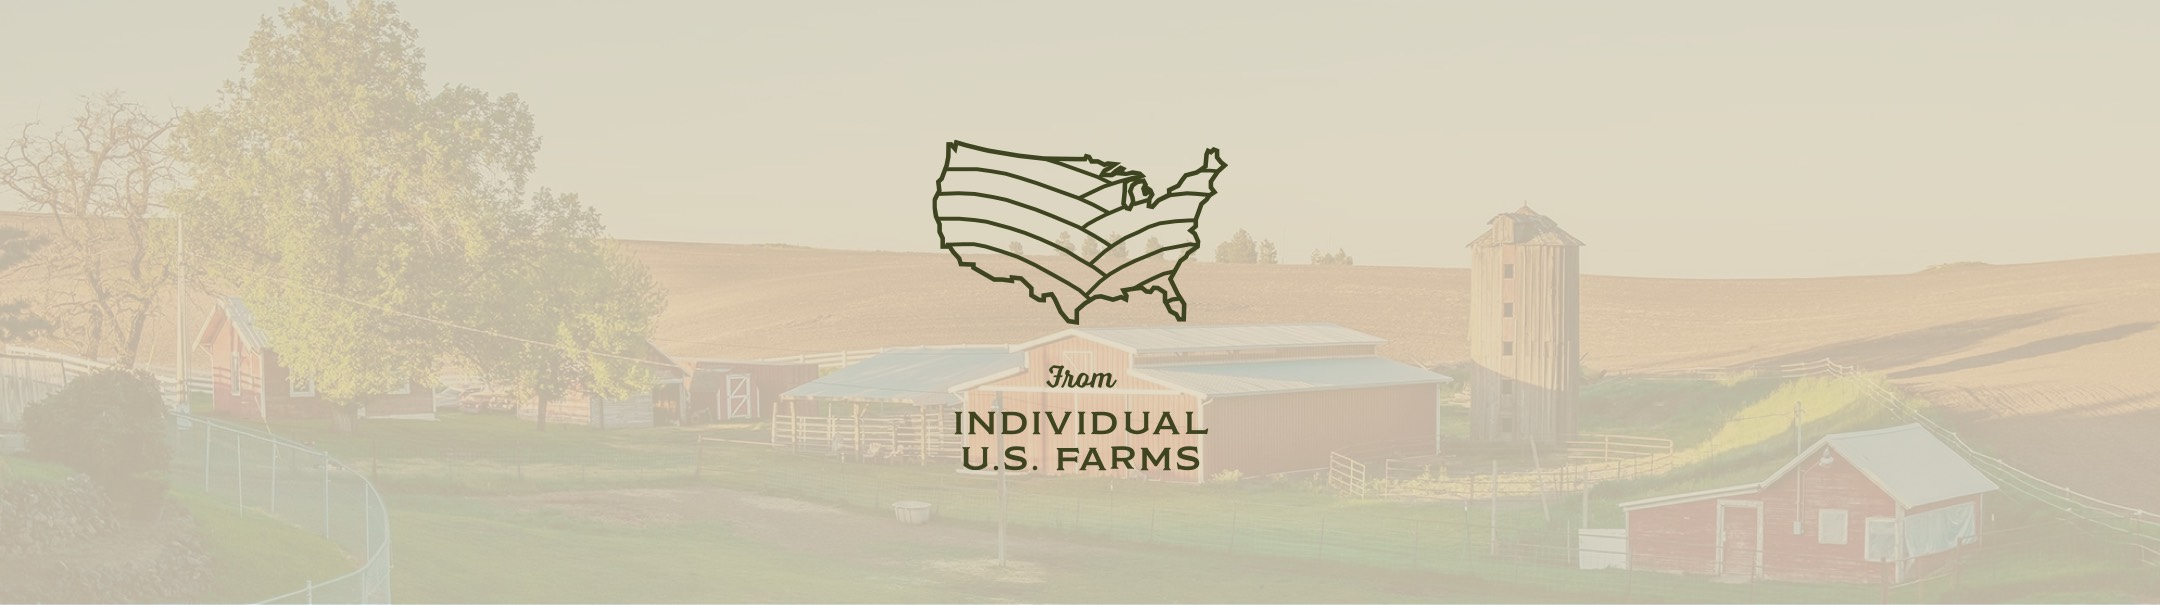 individual farms logo with background